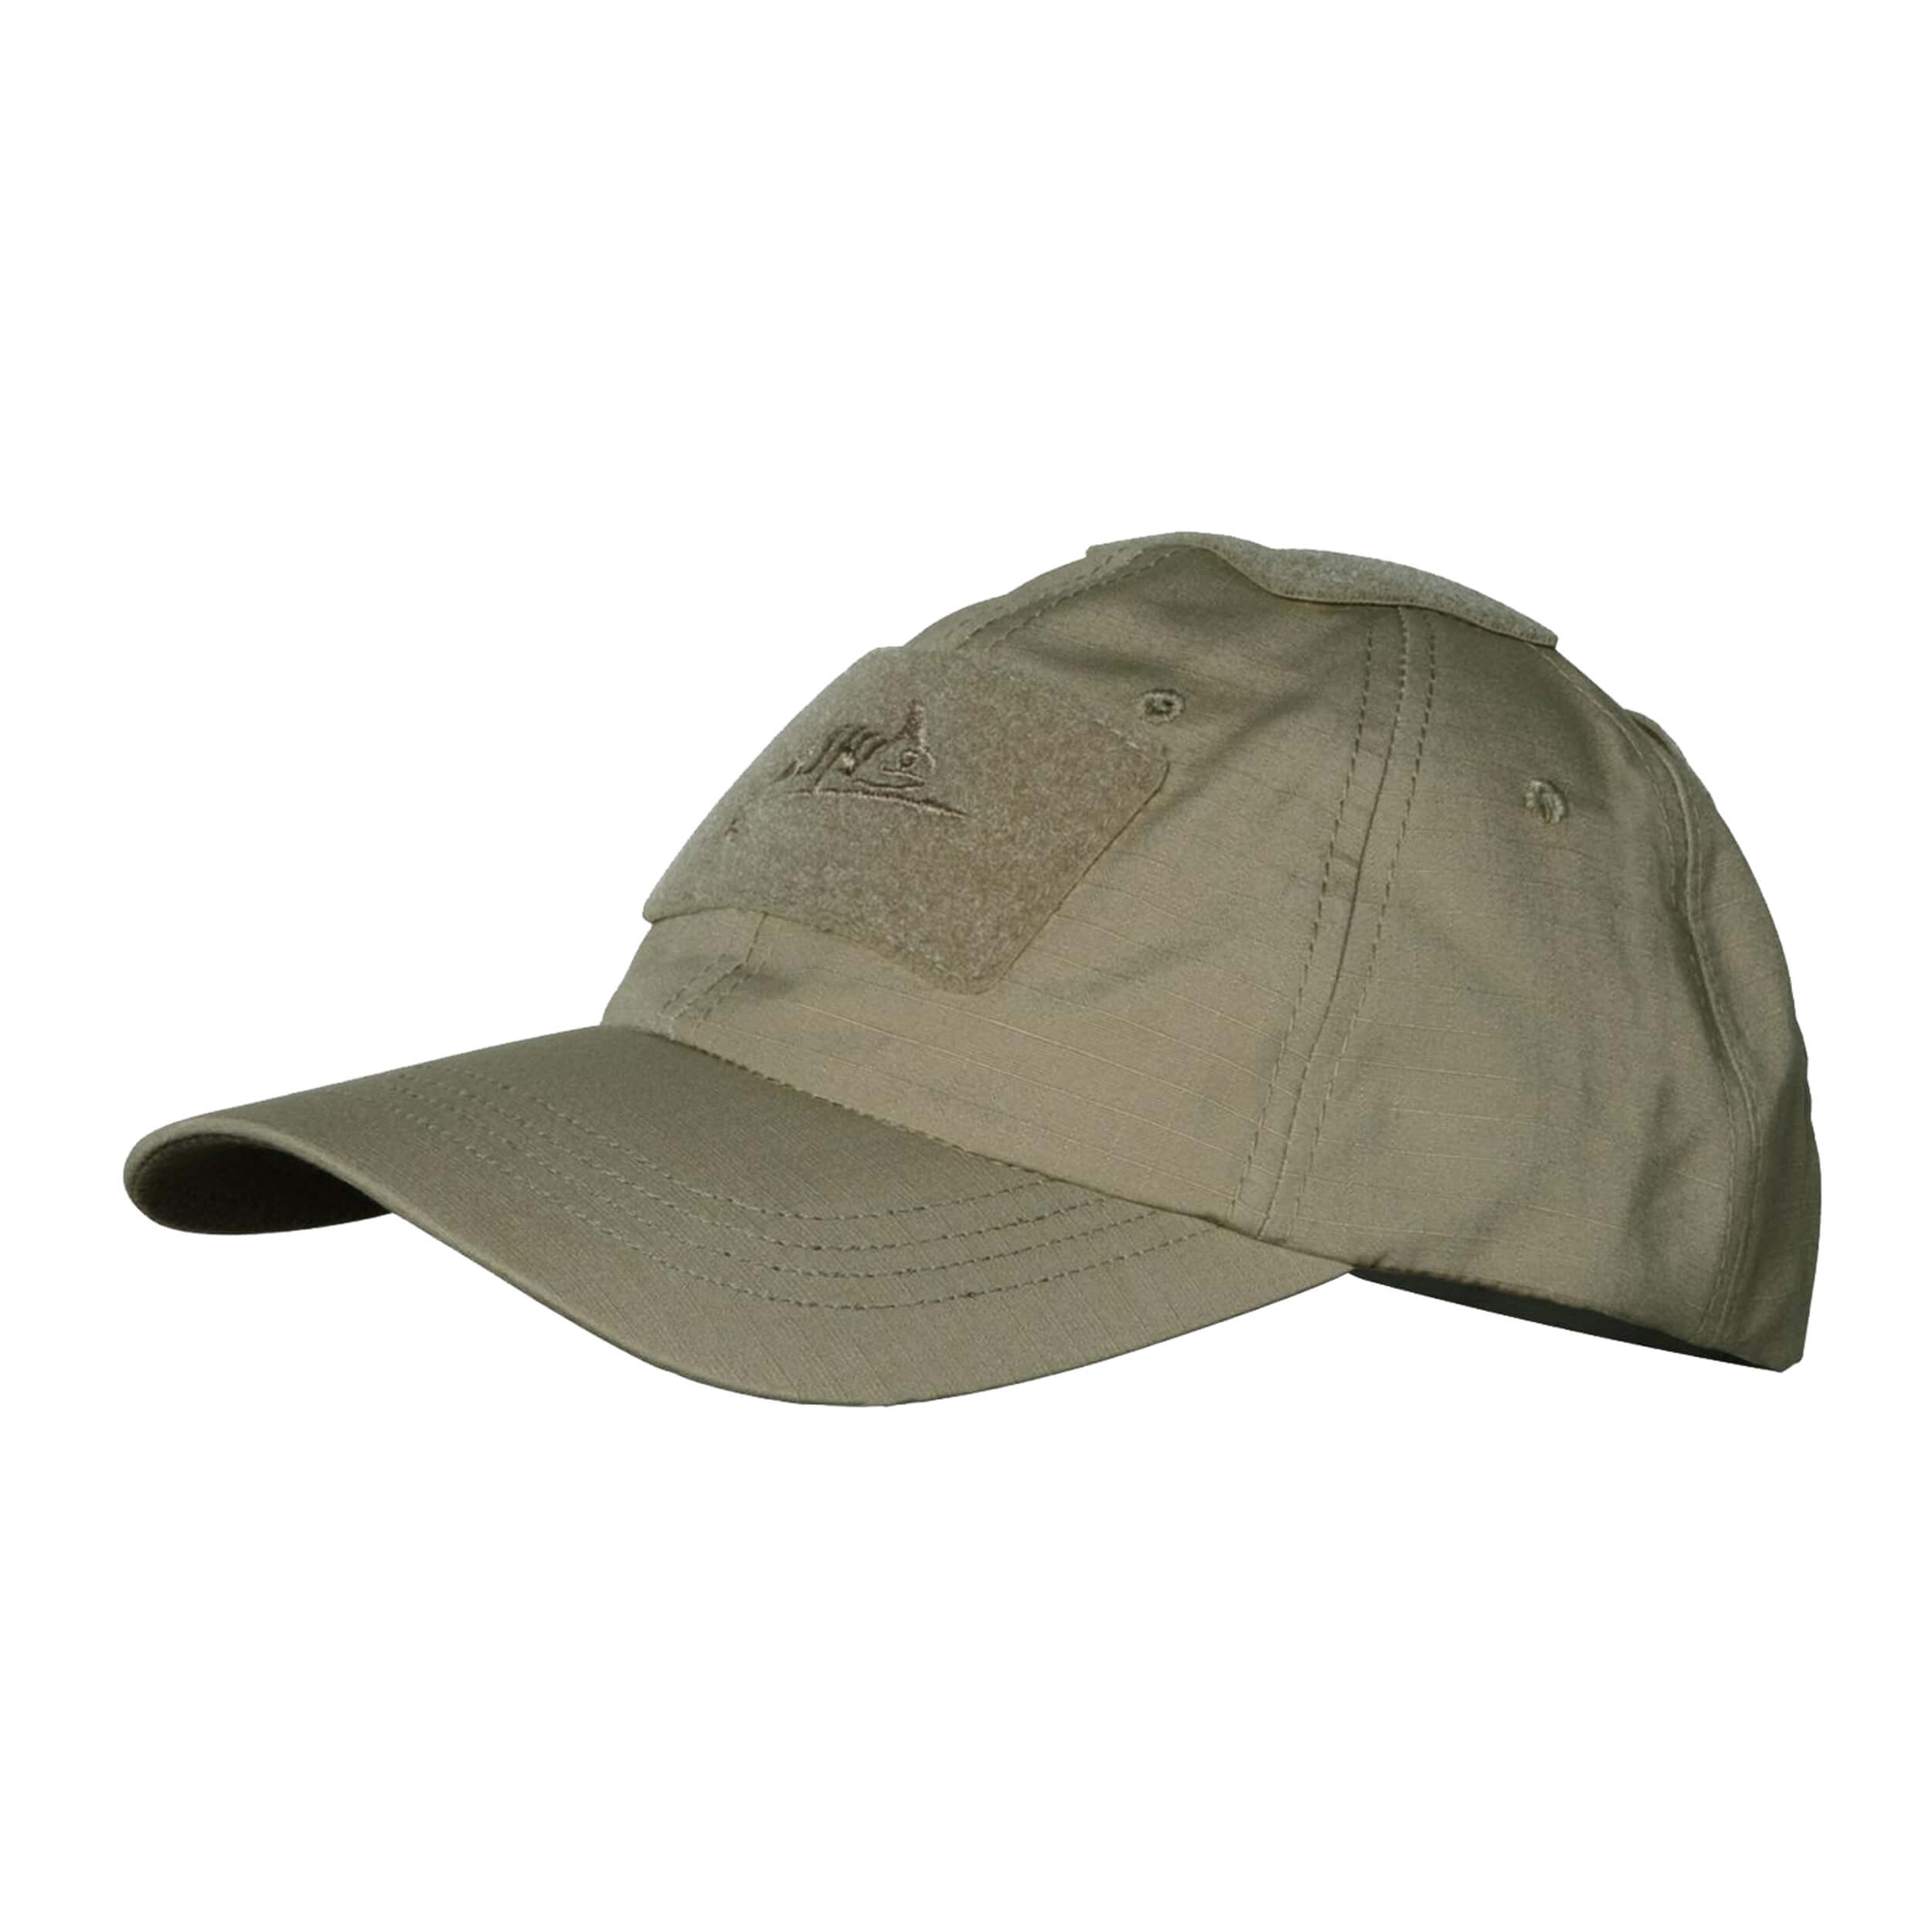 Helikon-Tex Tactical BBC Cap - PolyCotton Ripstop - Adaptive Green